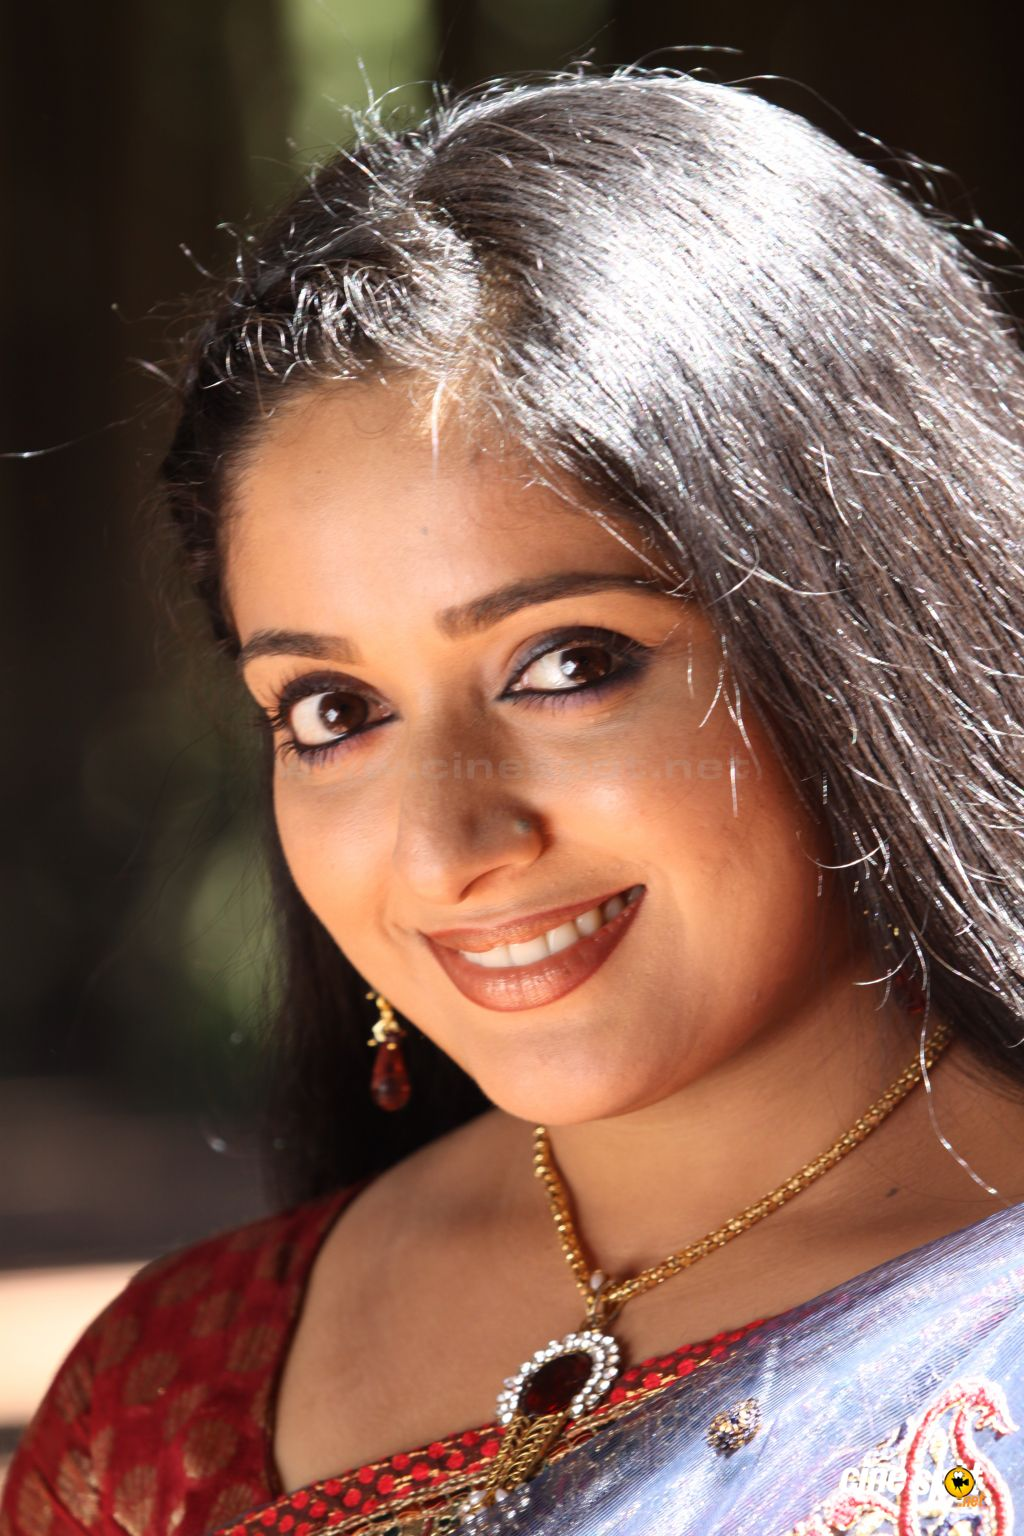 Kavya Madhavan Recent Photos http://terra-novablogs.blogspot.com/2011/01/kavya-madhavan-latest-photos.html